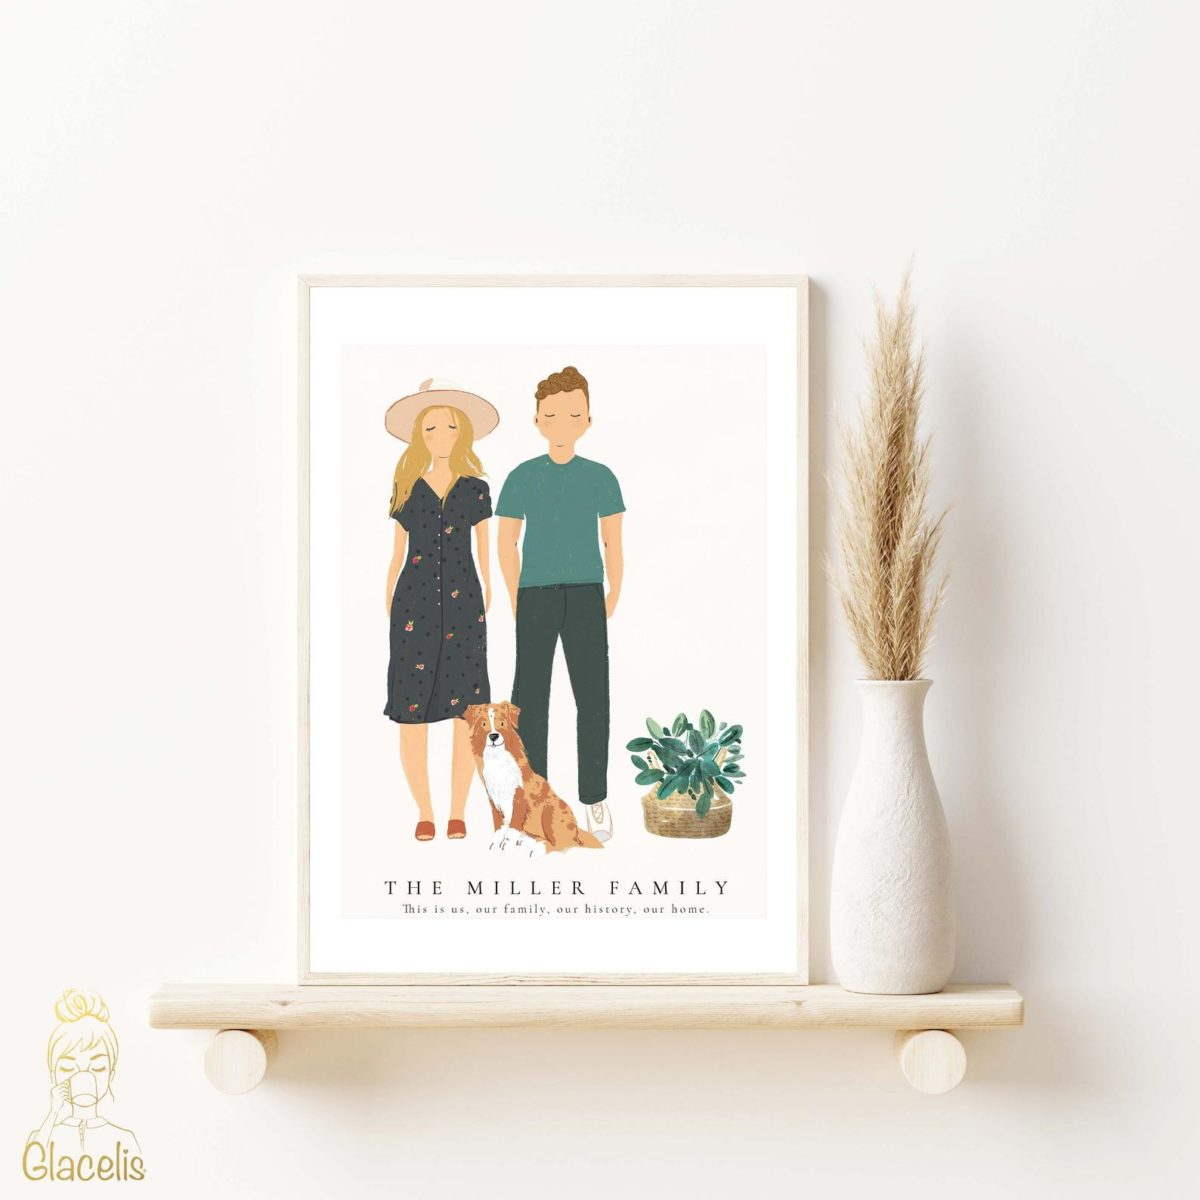 13 pieces of wall art from etsy you're sure to love | sometimes you just need a good piece of artwork to break up all of the family photos.